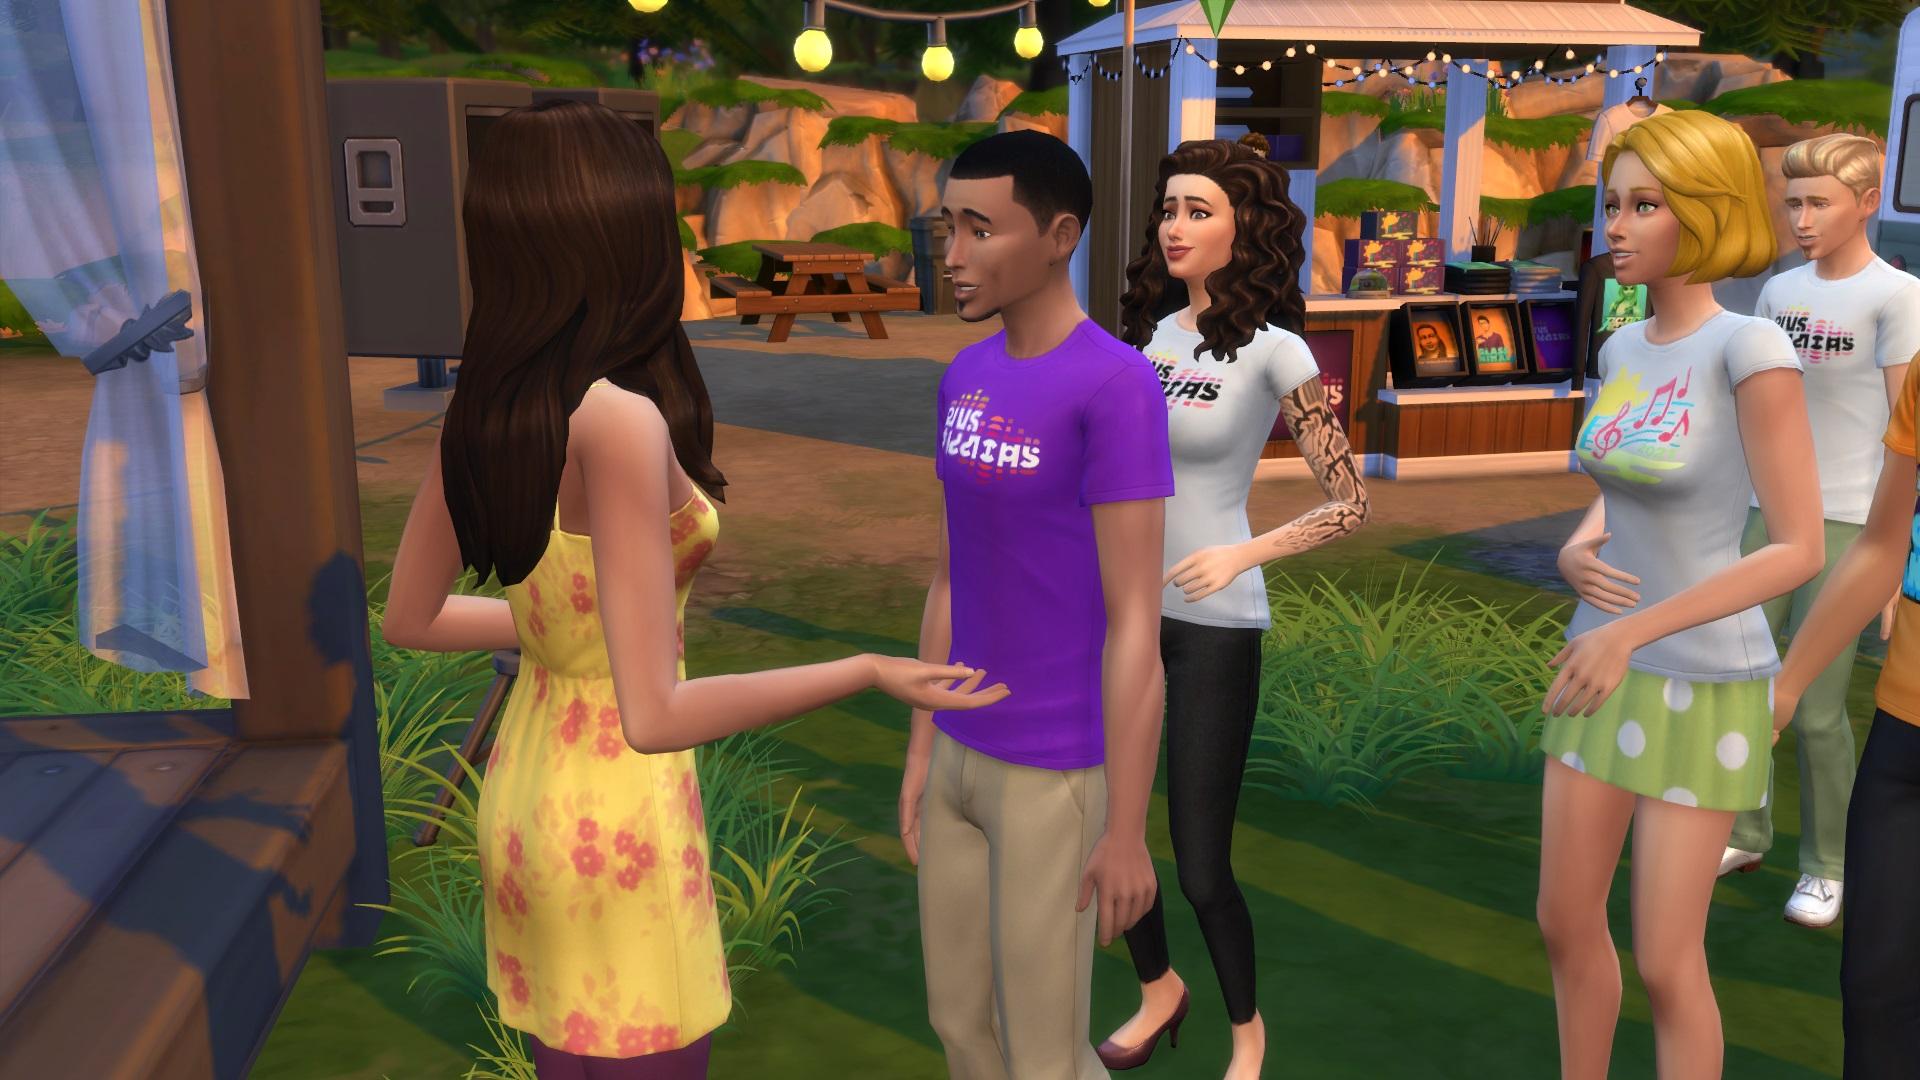 Female sim with long brown hair and yellow dress talking to male sim with purple t-shirt. Another female Sim, with curly brown hair and wearing a tshirt and jeans is trying to talk to the first female but the man stands between them.